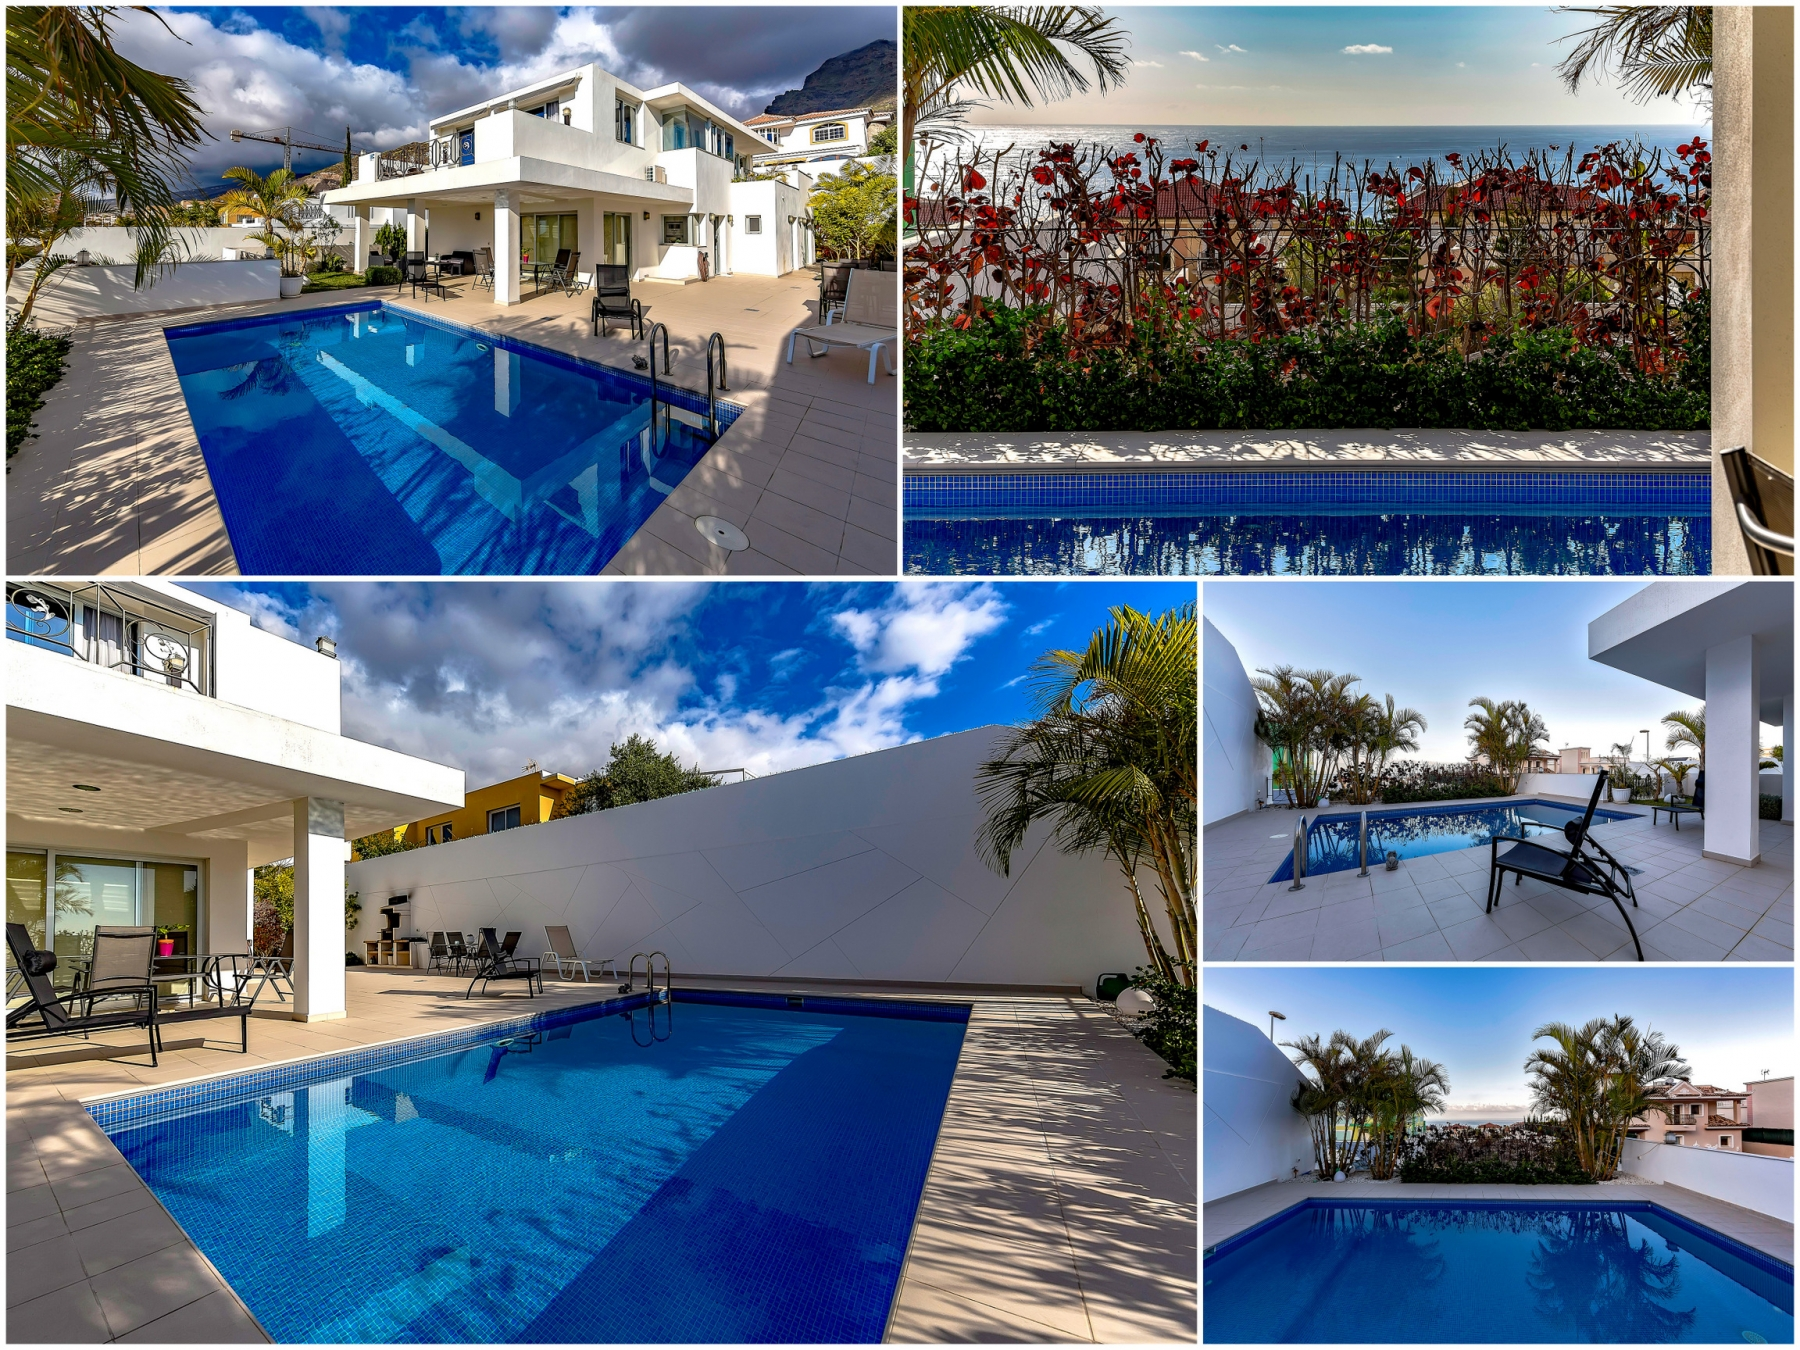 Properties for Sale in Tenerife, Canary Islands, Spain   SylkWayStar Real Estate. Luxury villa in the fashionable area of the south of the island of Tenerife – Madroñal.. Image-22853